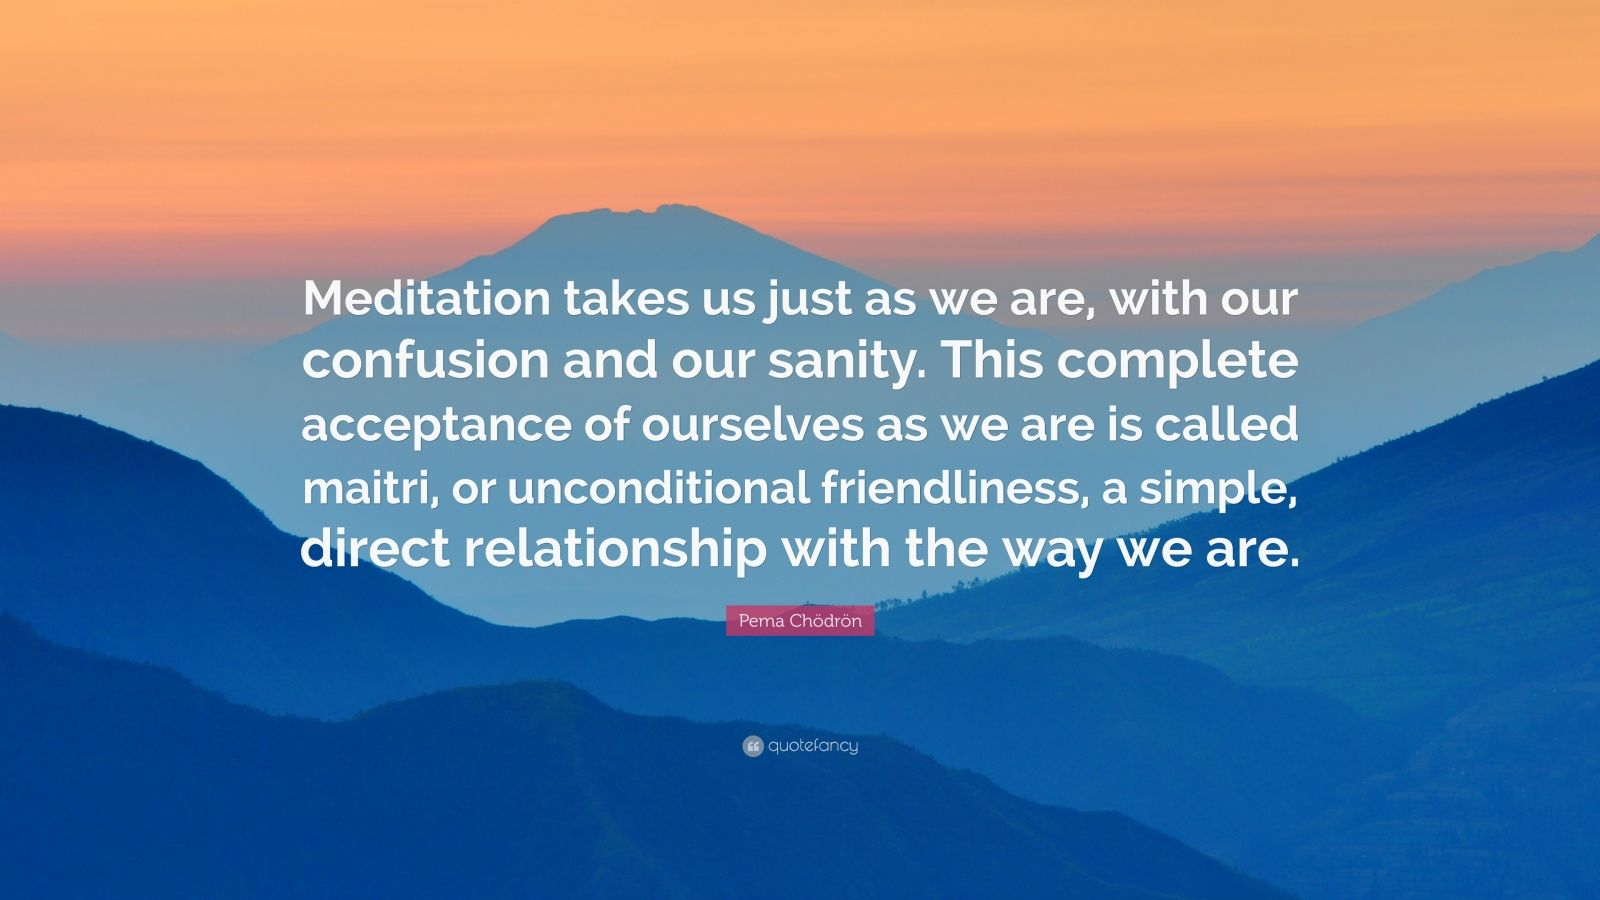 "Pema Chödrön Quote: ""Meditation takes us just as we are, with our confusion and our sanity. This complete acceptance of ourselves as we are is called maitri, or unconditional friendliness, a simple, direct relationship with the way we are."""